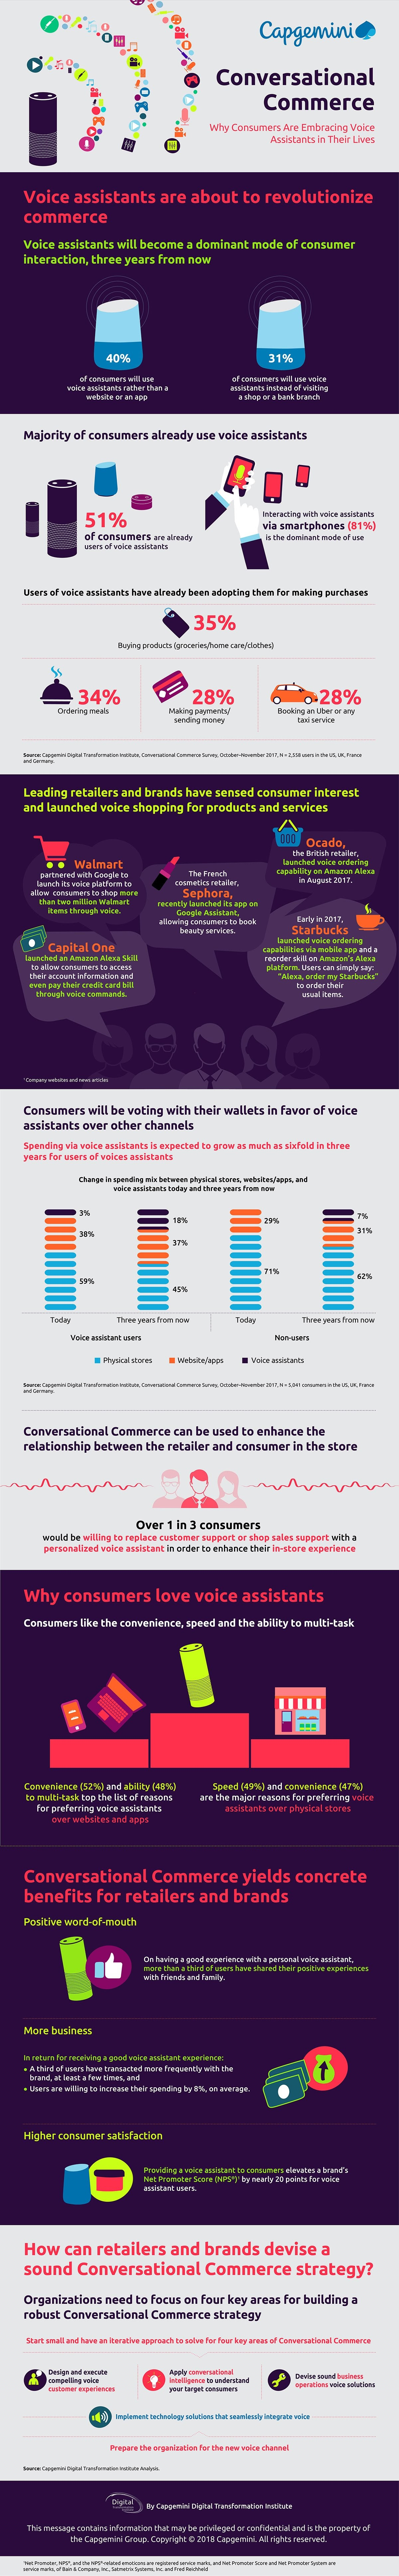 Conversational Commerce: Why Consumers Are Embracing Voice Assistants In Their Lives #Infographic